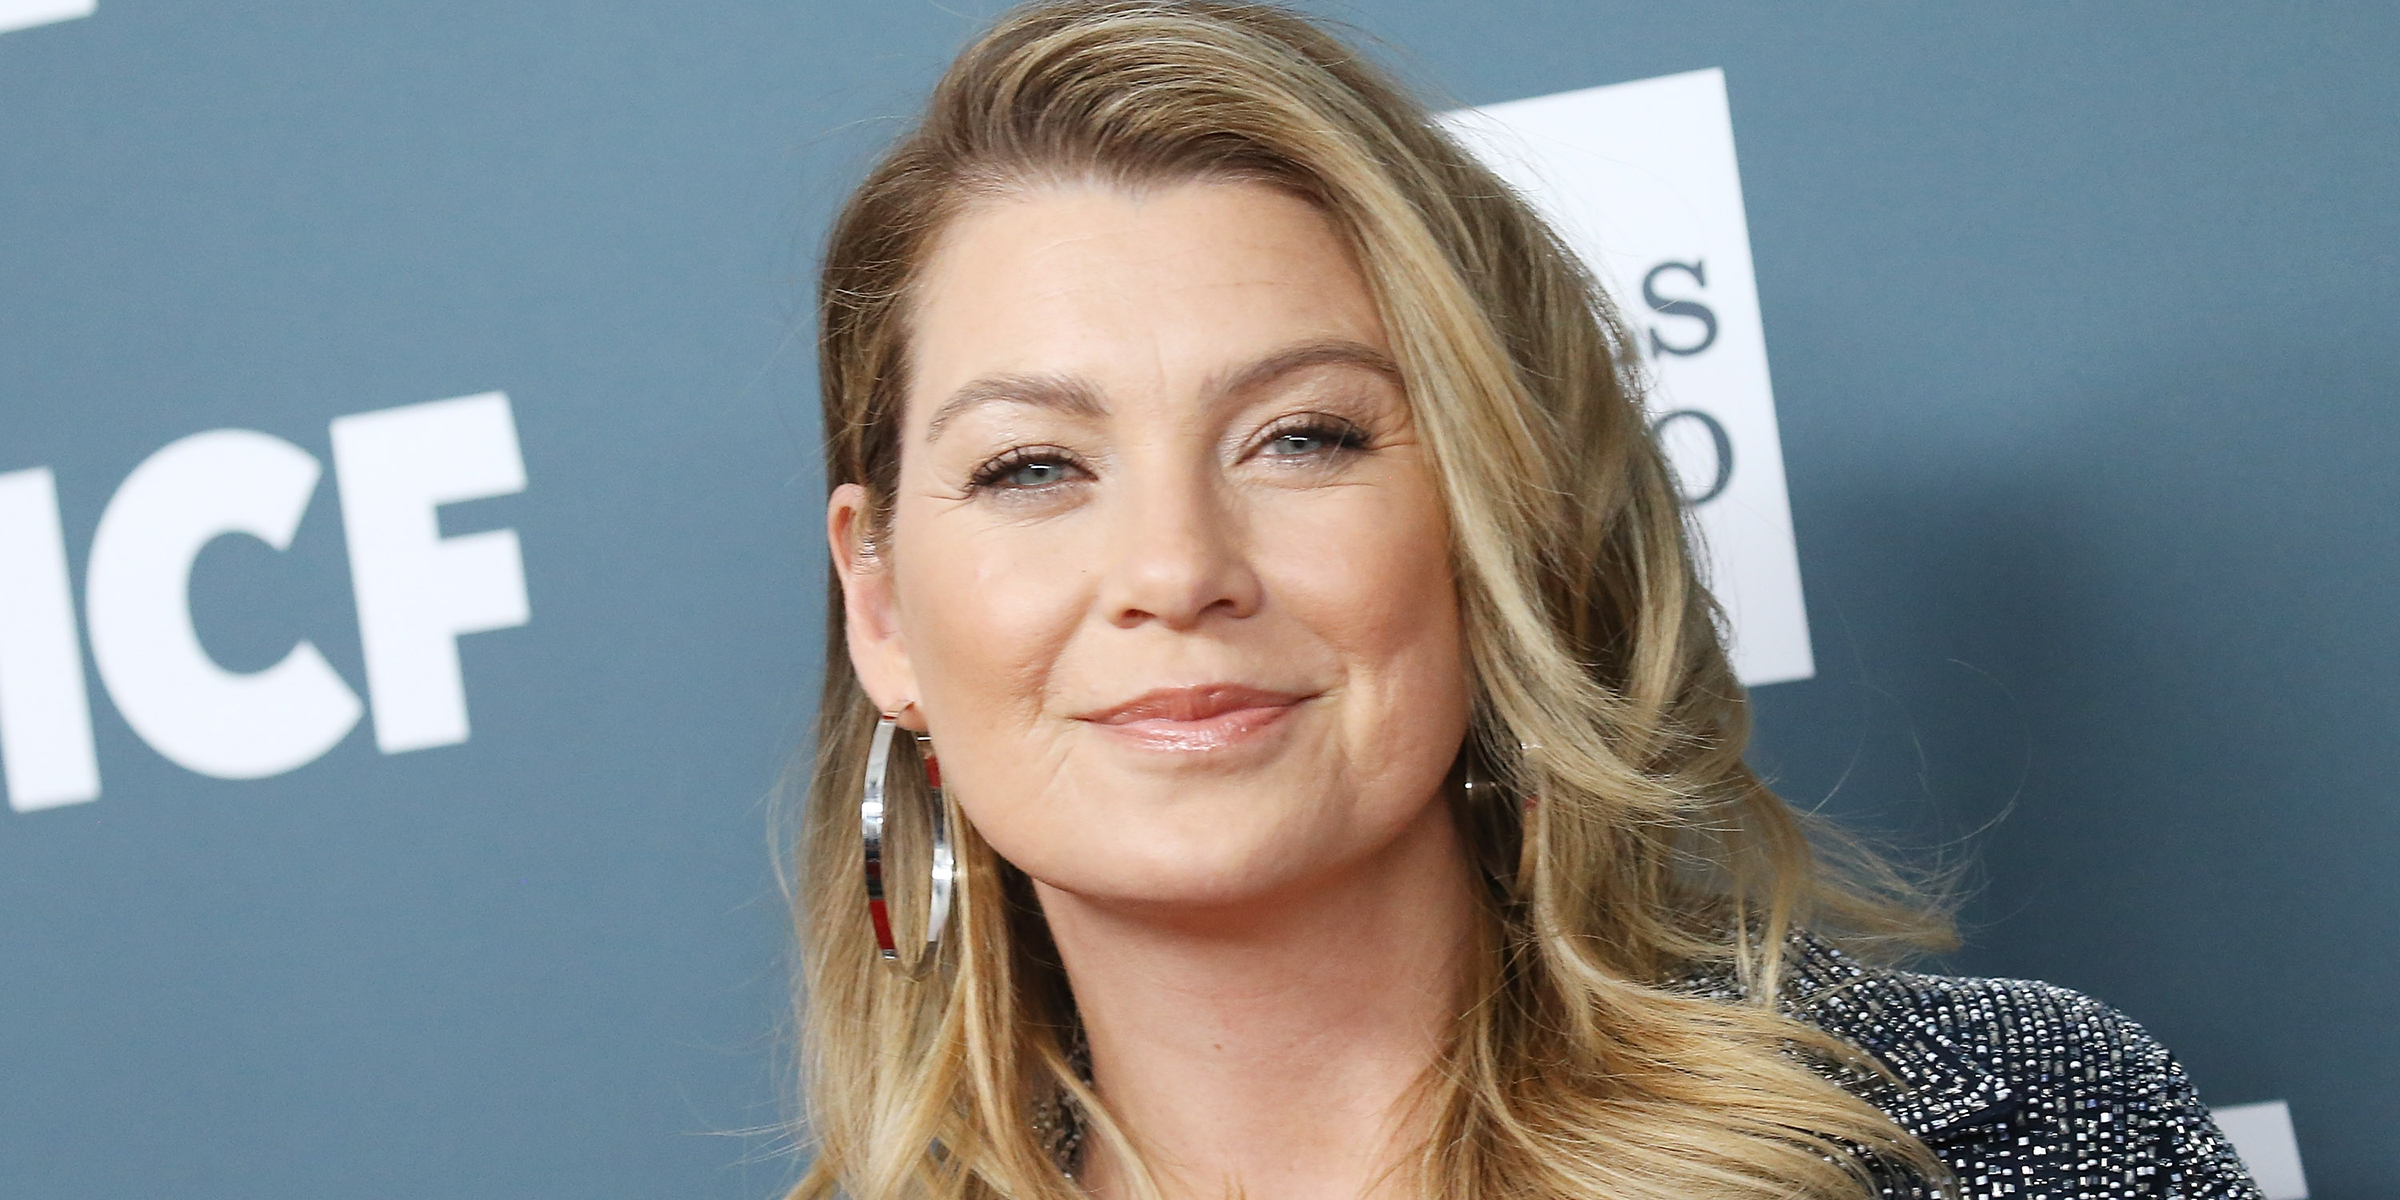 Ellen Pompeo nudes (99 foto and video), Sexy, Paparazzi, Boobs, braless 2015